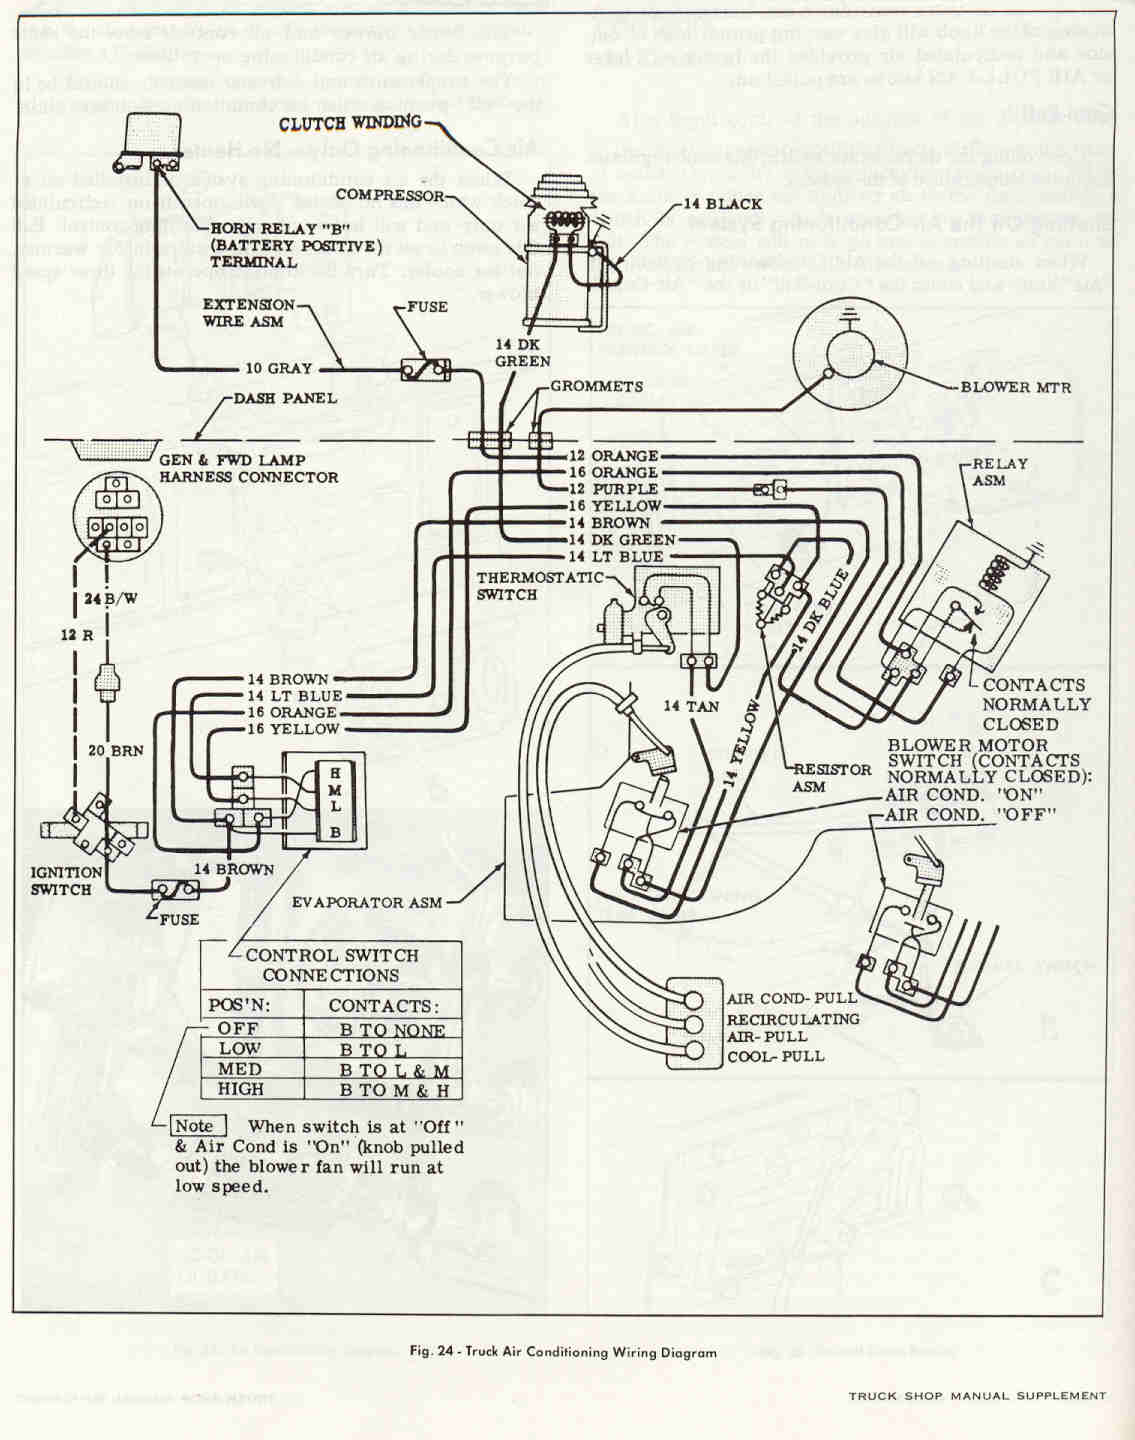 1978 chevy c10 wiring diagram   29 wiring diagram images